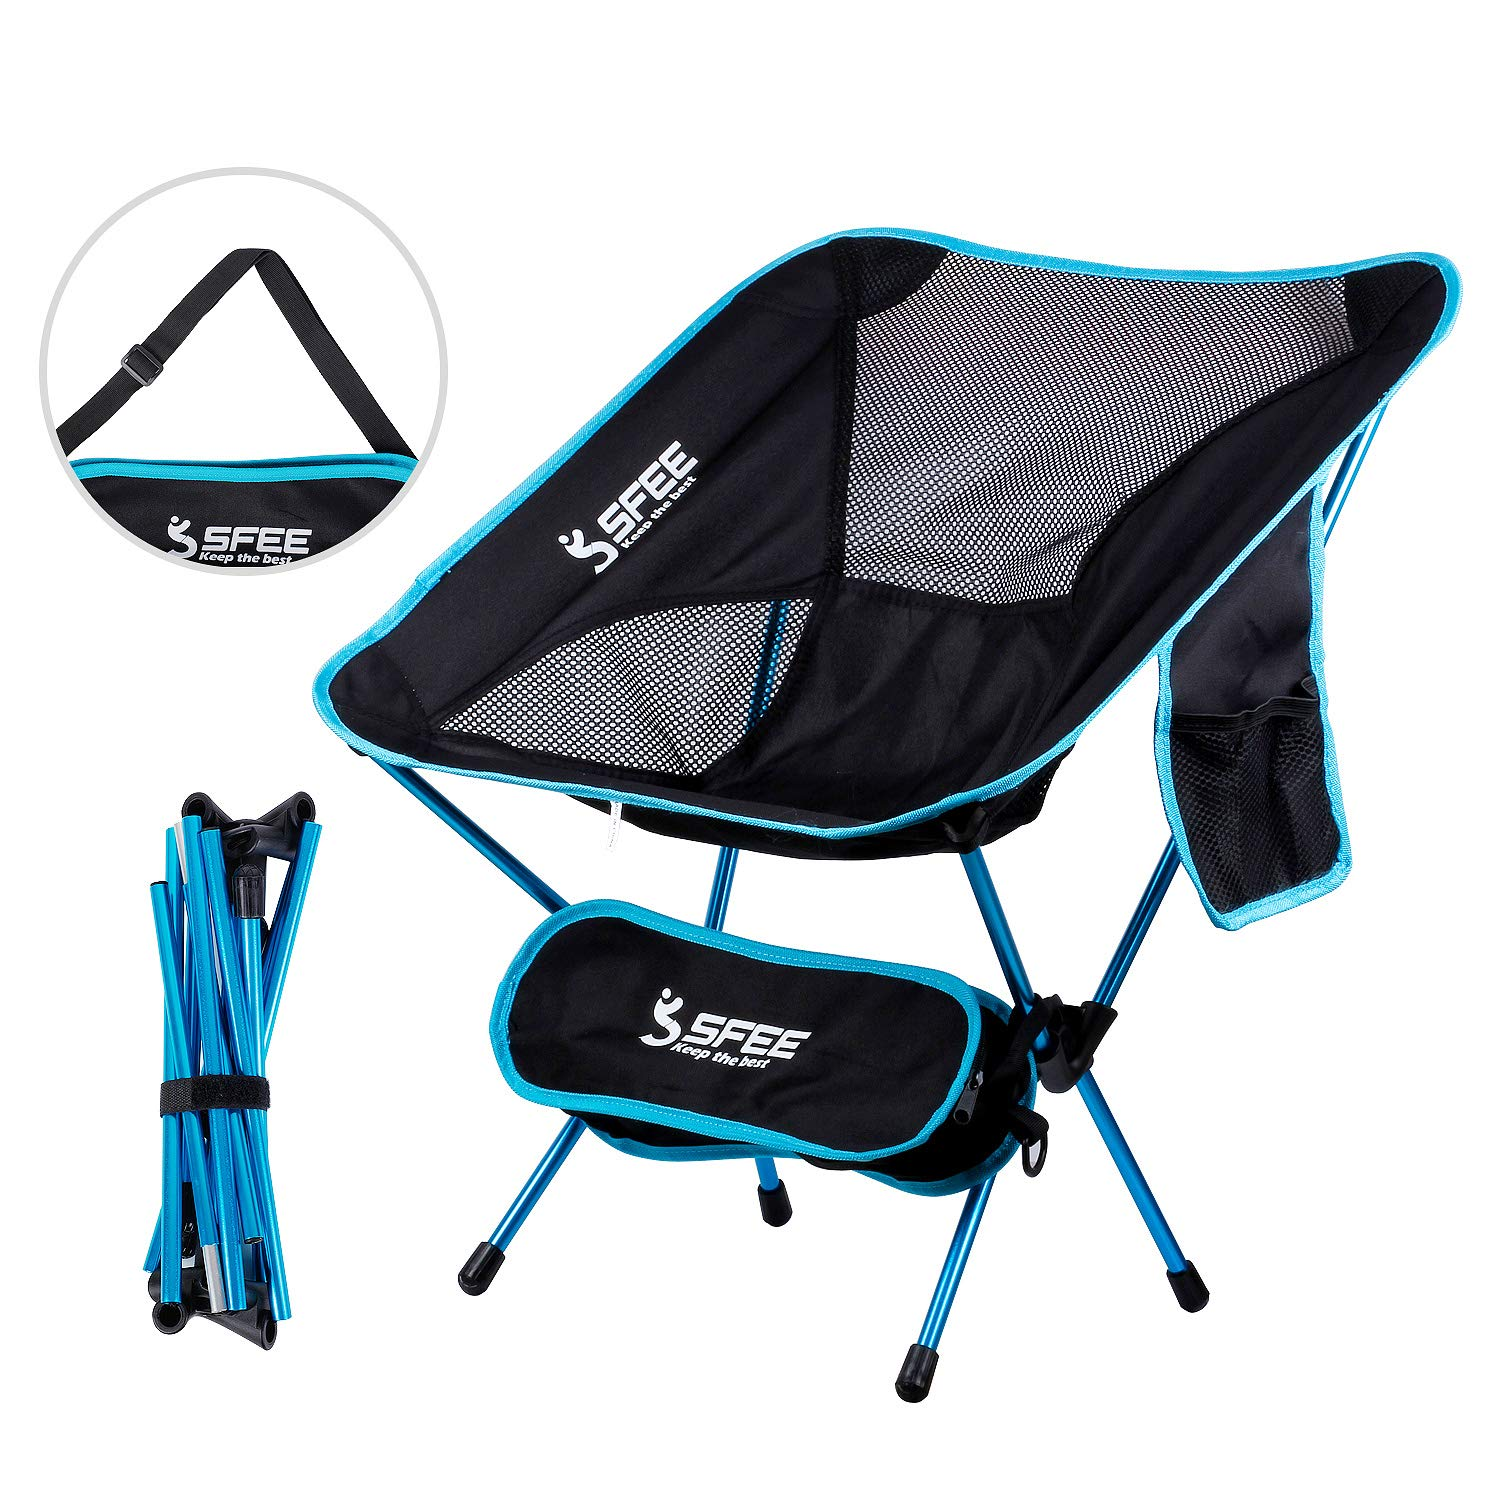 Sfee Ultralight Folding Camping Chairs, Heavy Duty Portable Compact Breathable Mesh Kids Camp Chair – Comfortable Perfect for Backpacking Hiking Picnic Outdoors BBQ Travel Finishing with Carry Bag